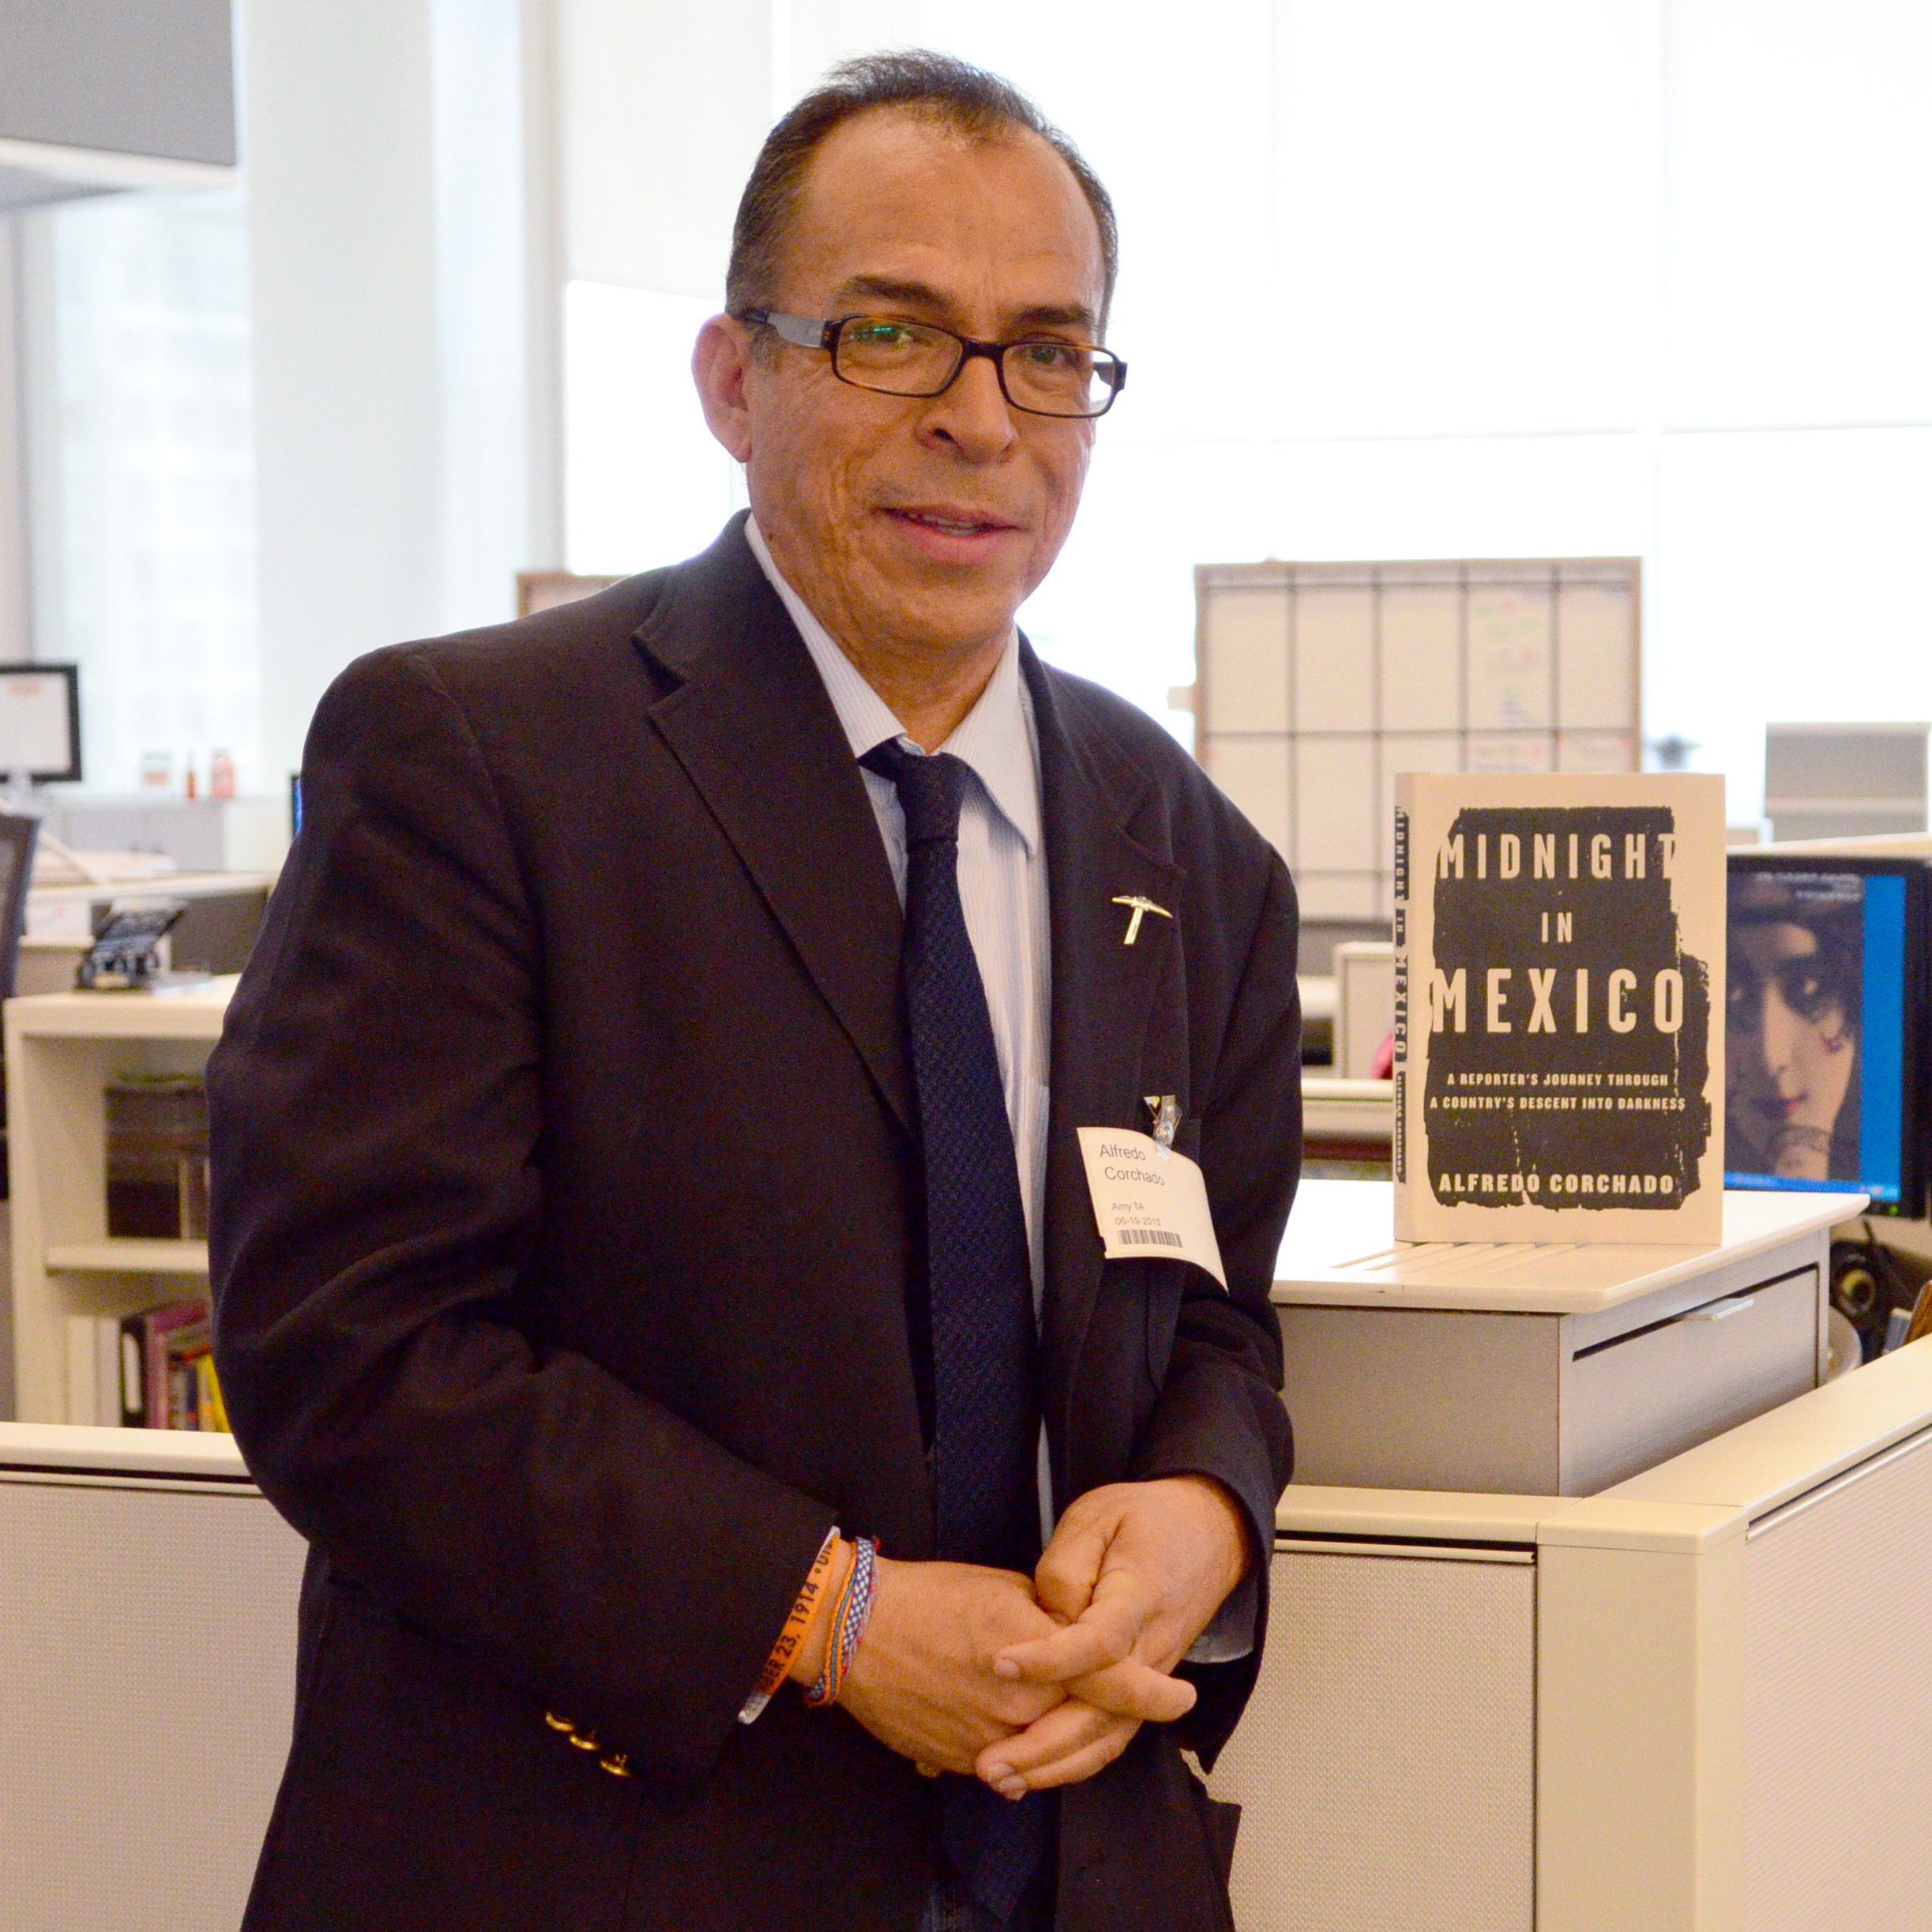 Alfredo Corchado at NPR's Washington D.C. headquarters.